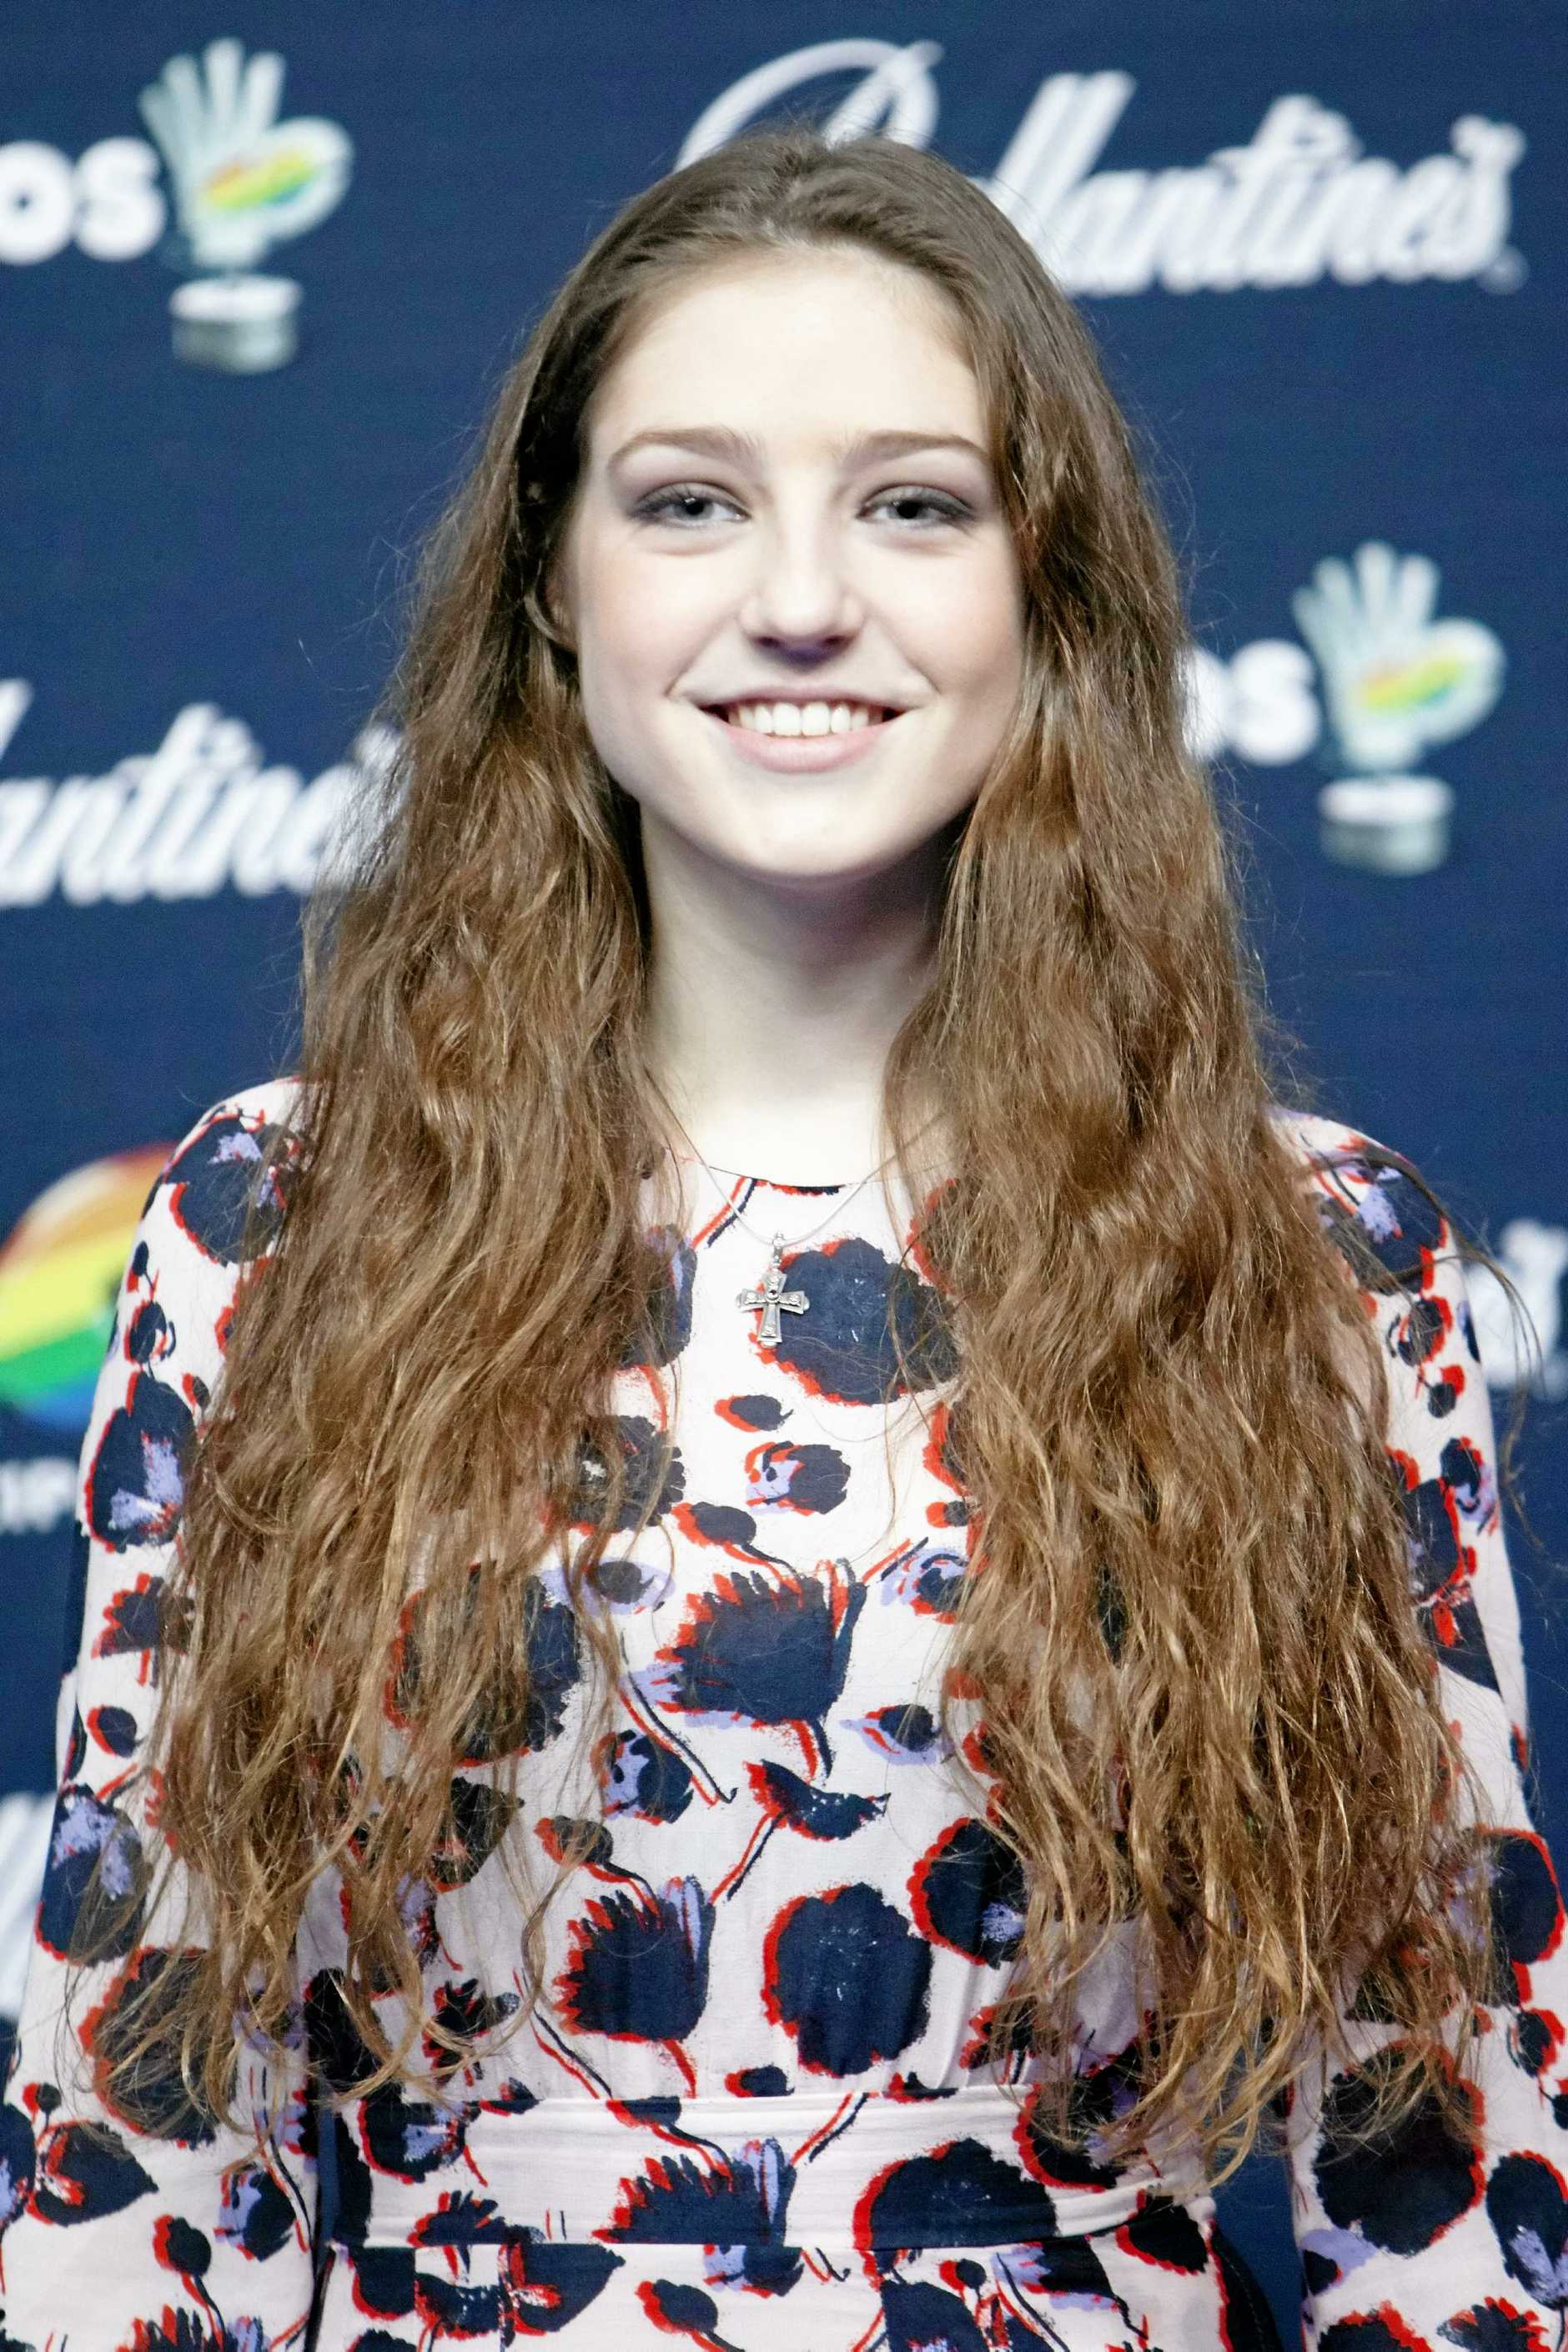 English singer Birdy proves her skill during a recent concert.